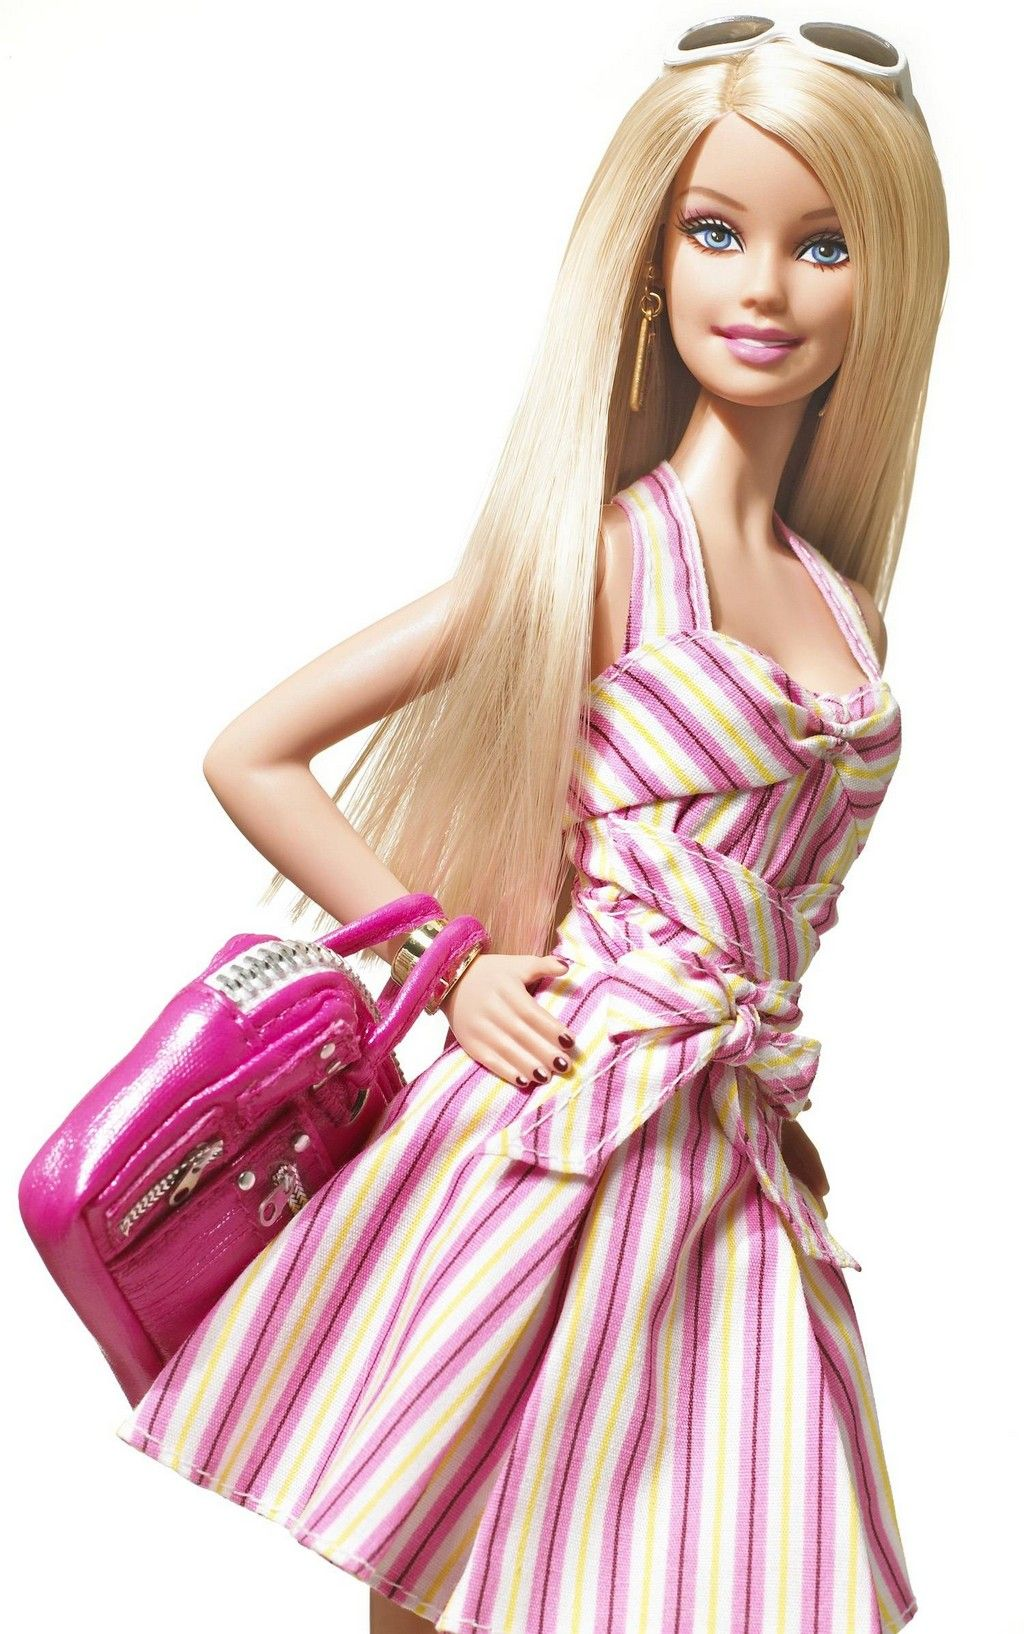 classic barbie doll - Google Search | Childhood Greatness ...